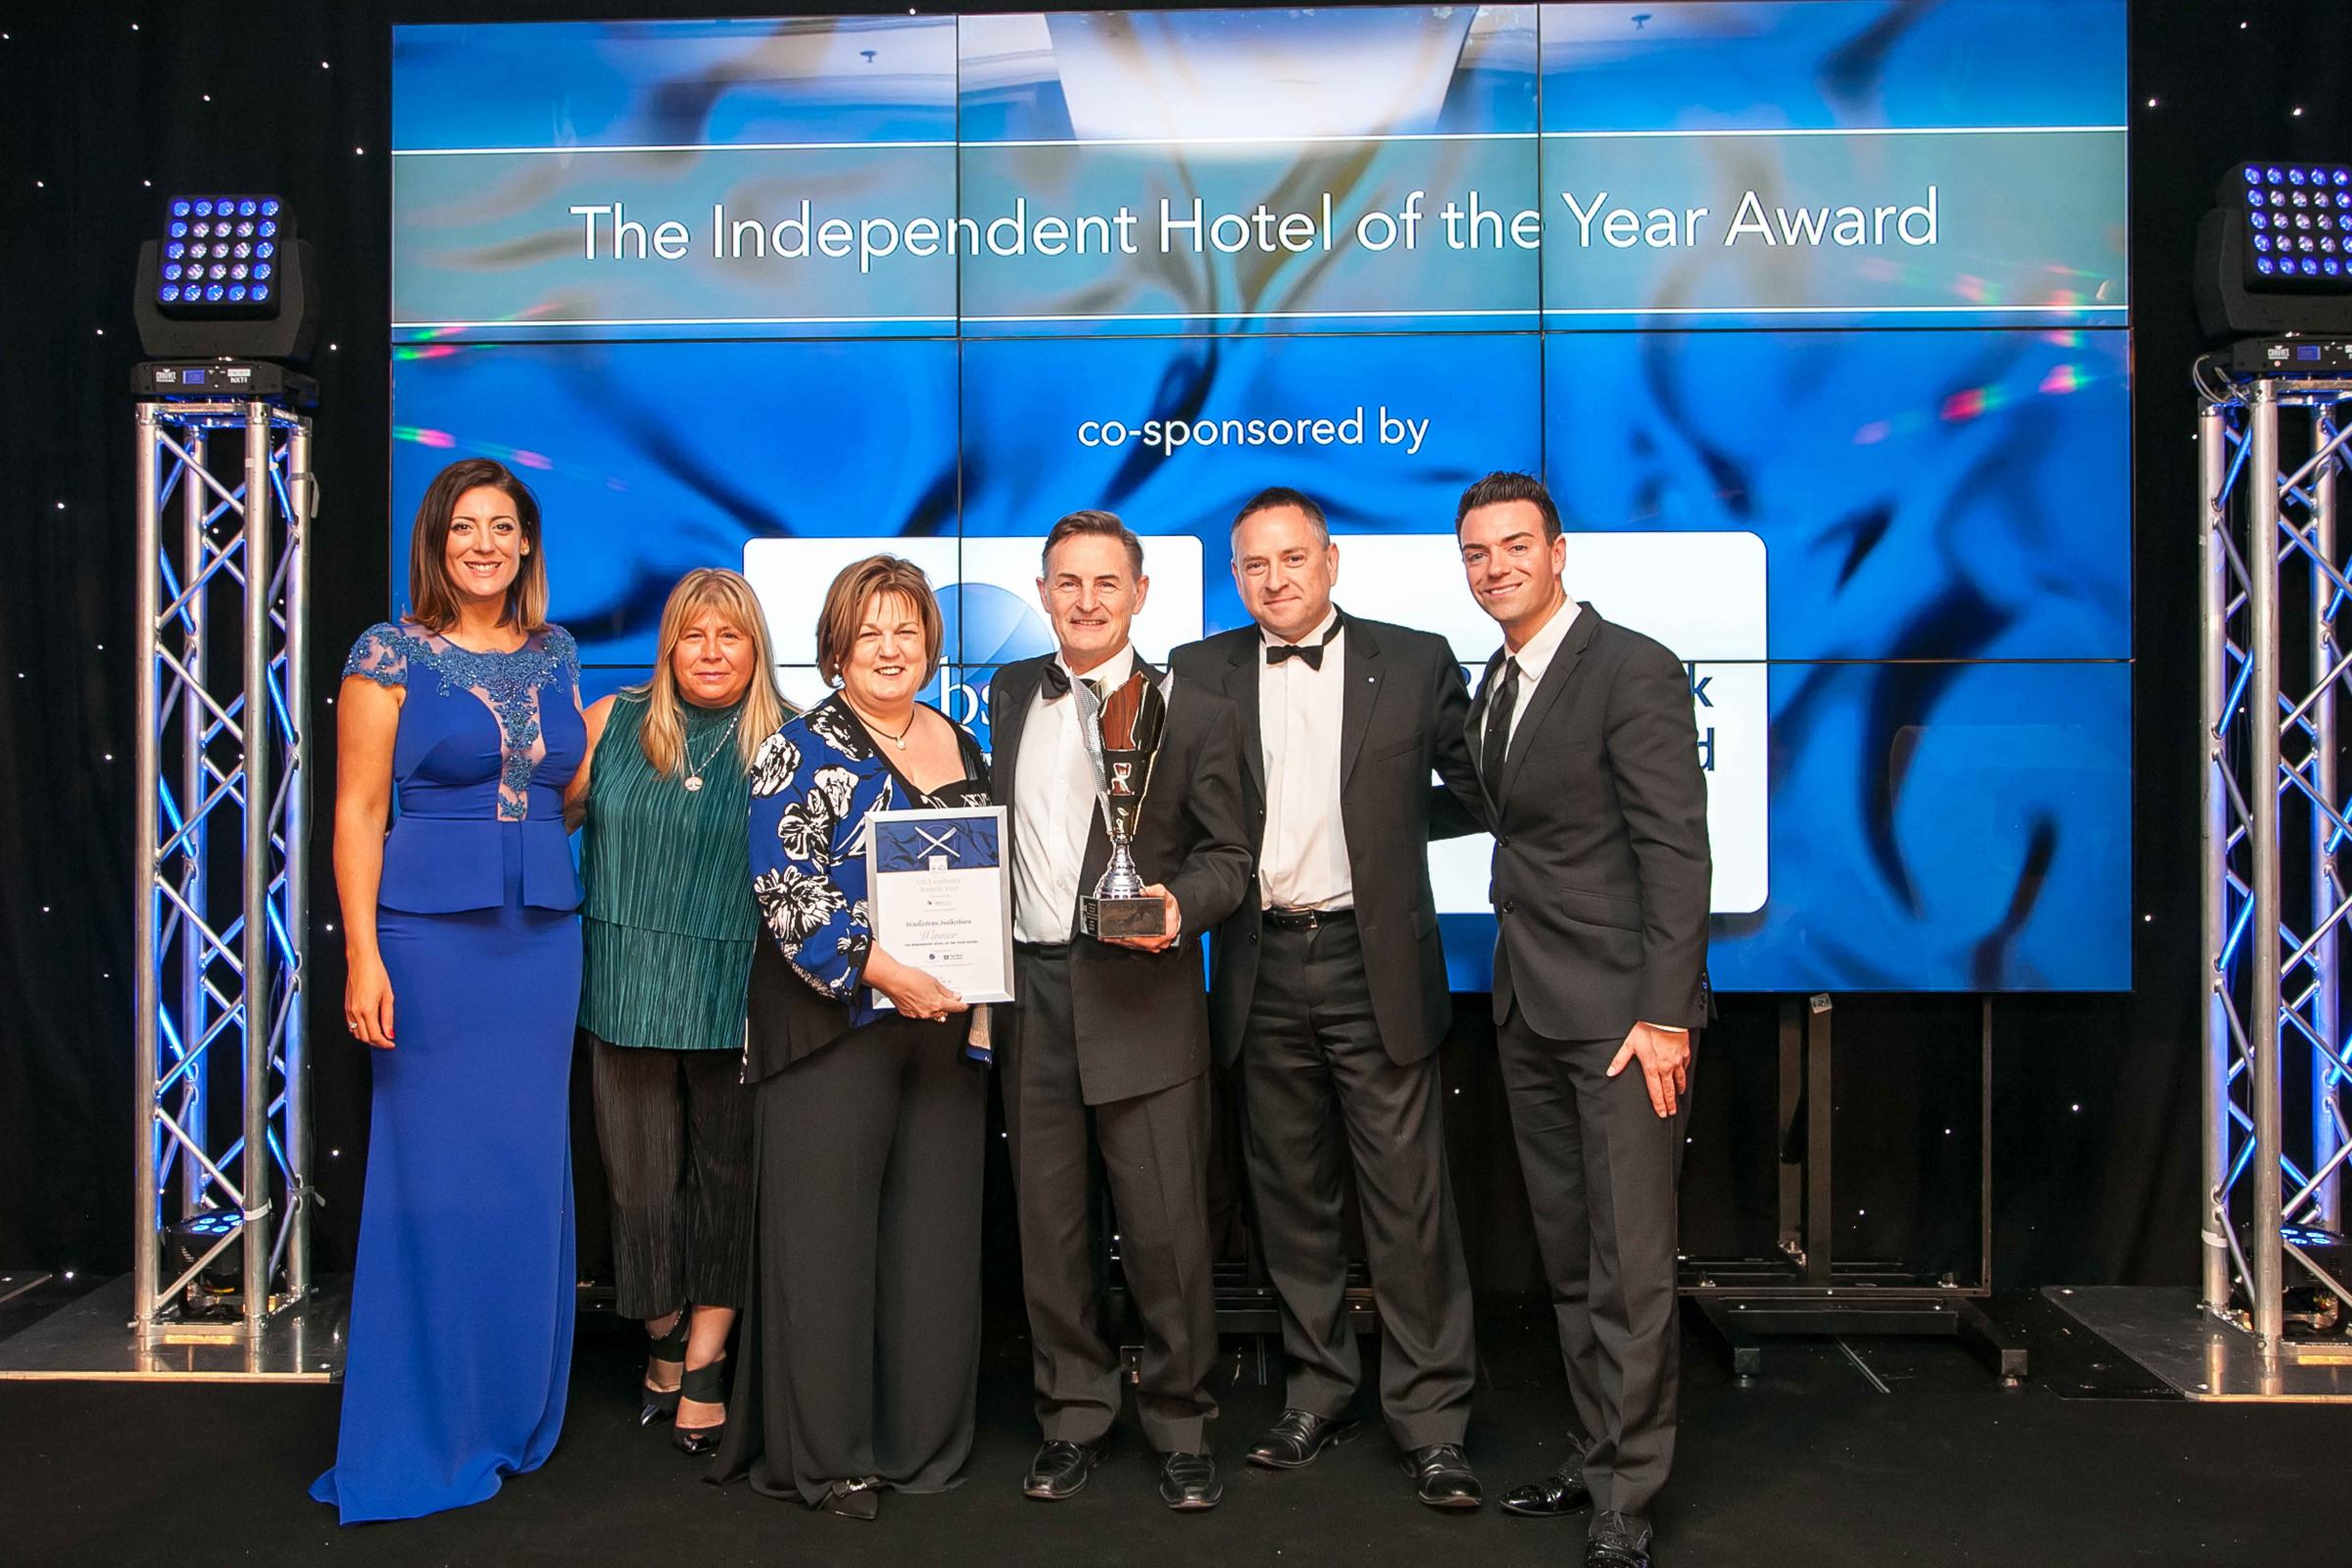 John and Sylvia Matthews (centre) with event presenters Catriona Shearer and Des Clarke (far left and right), and category sponsors Carol Ward of Bruce Stevenson insurance brokers and Stephen MacGregor of the Royal Bank of Scotland